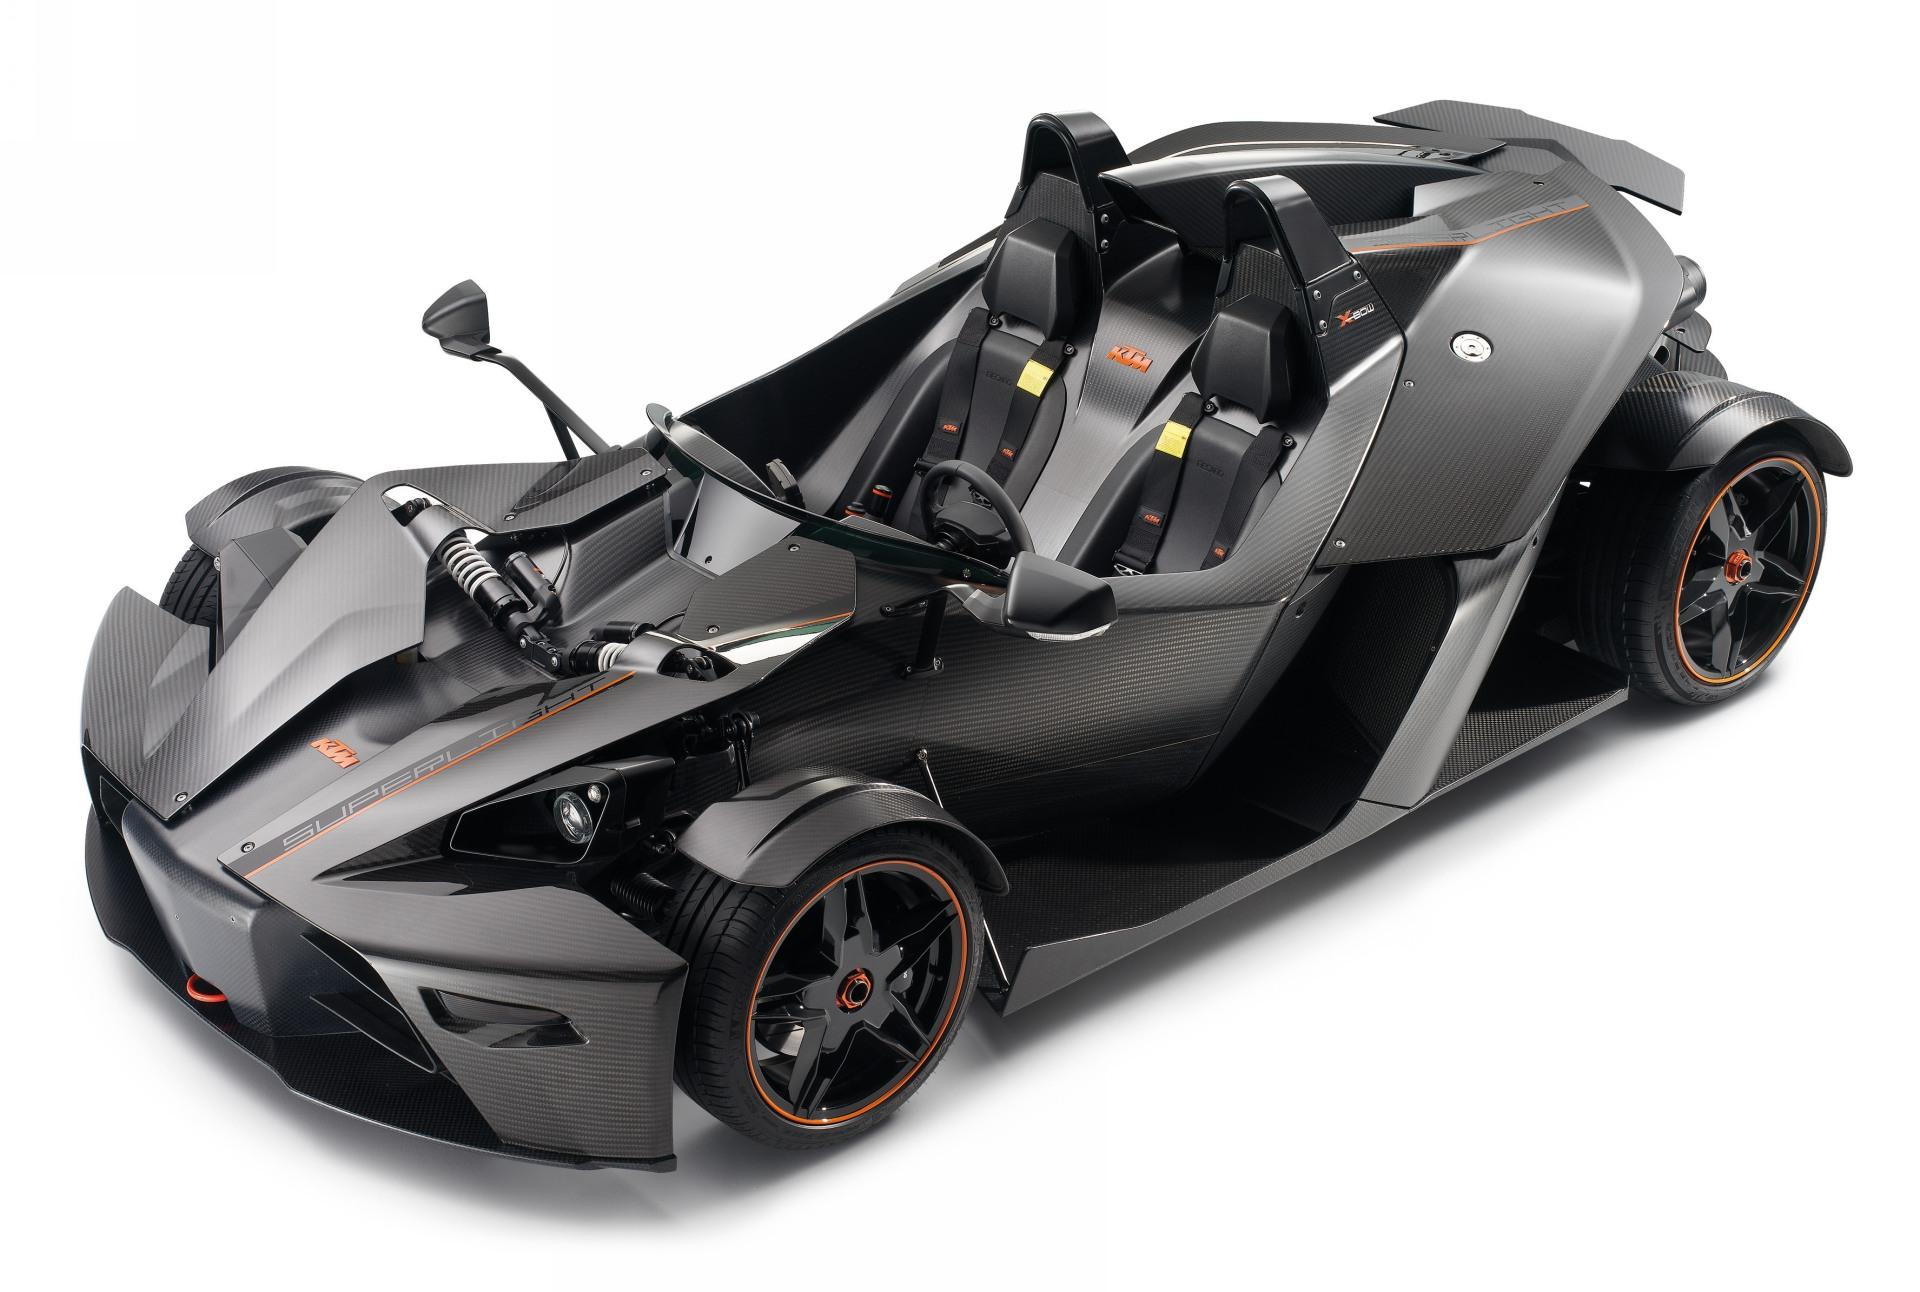 2009 ktm x bow superlight - X bow ktm ...